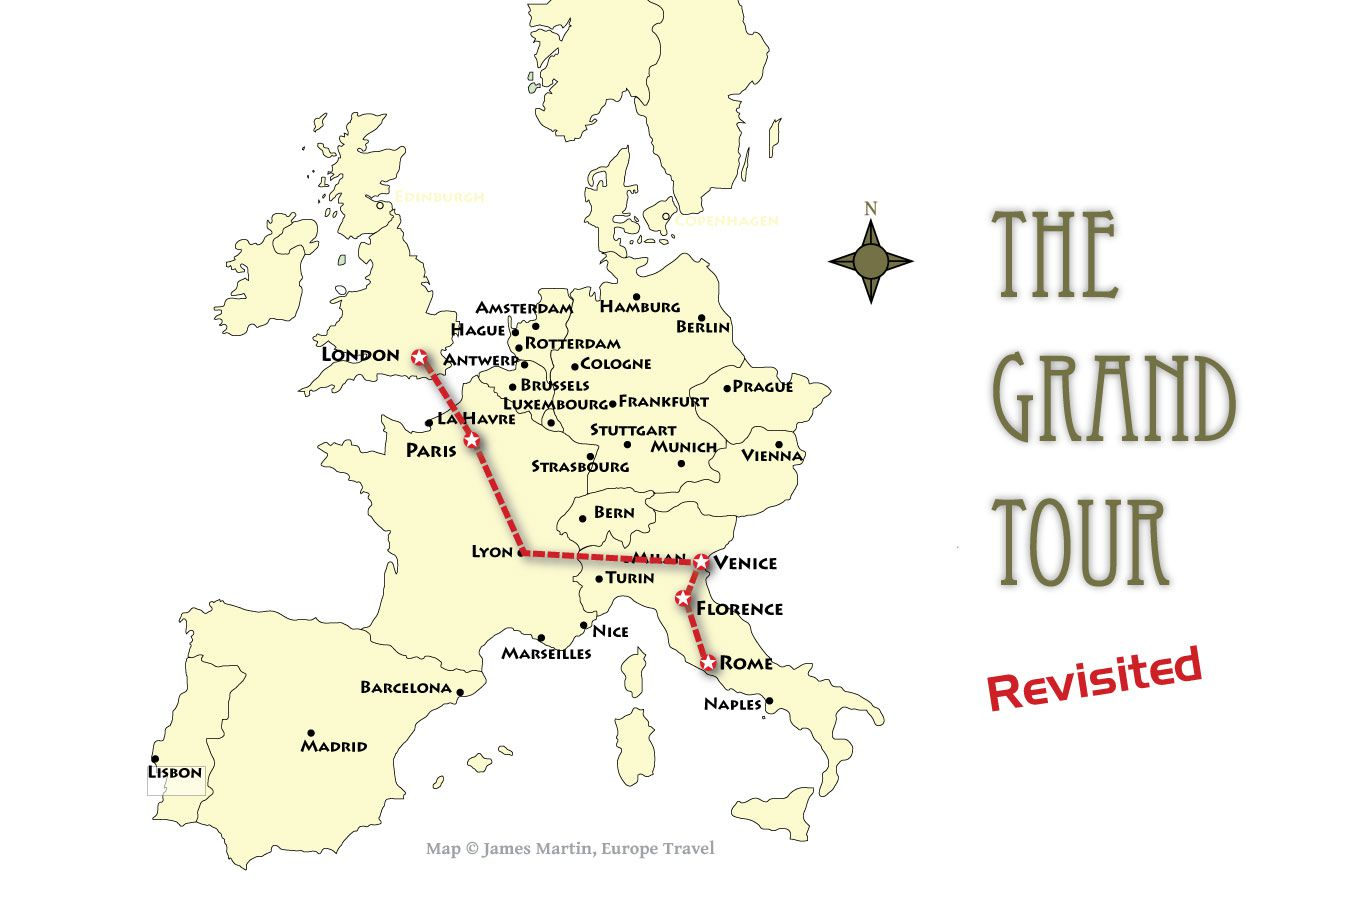 the grand tour of europe revisited